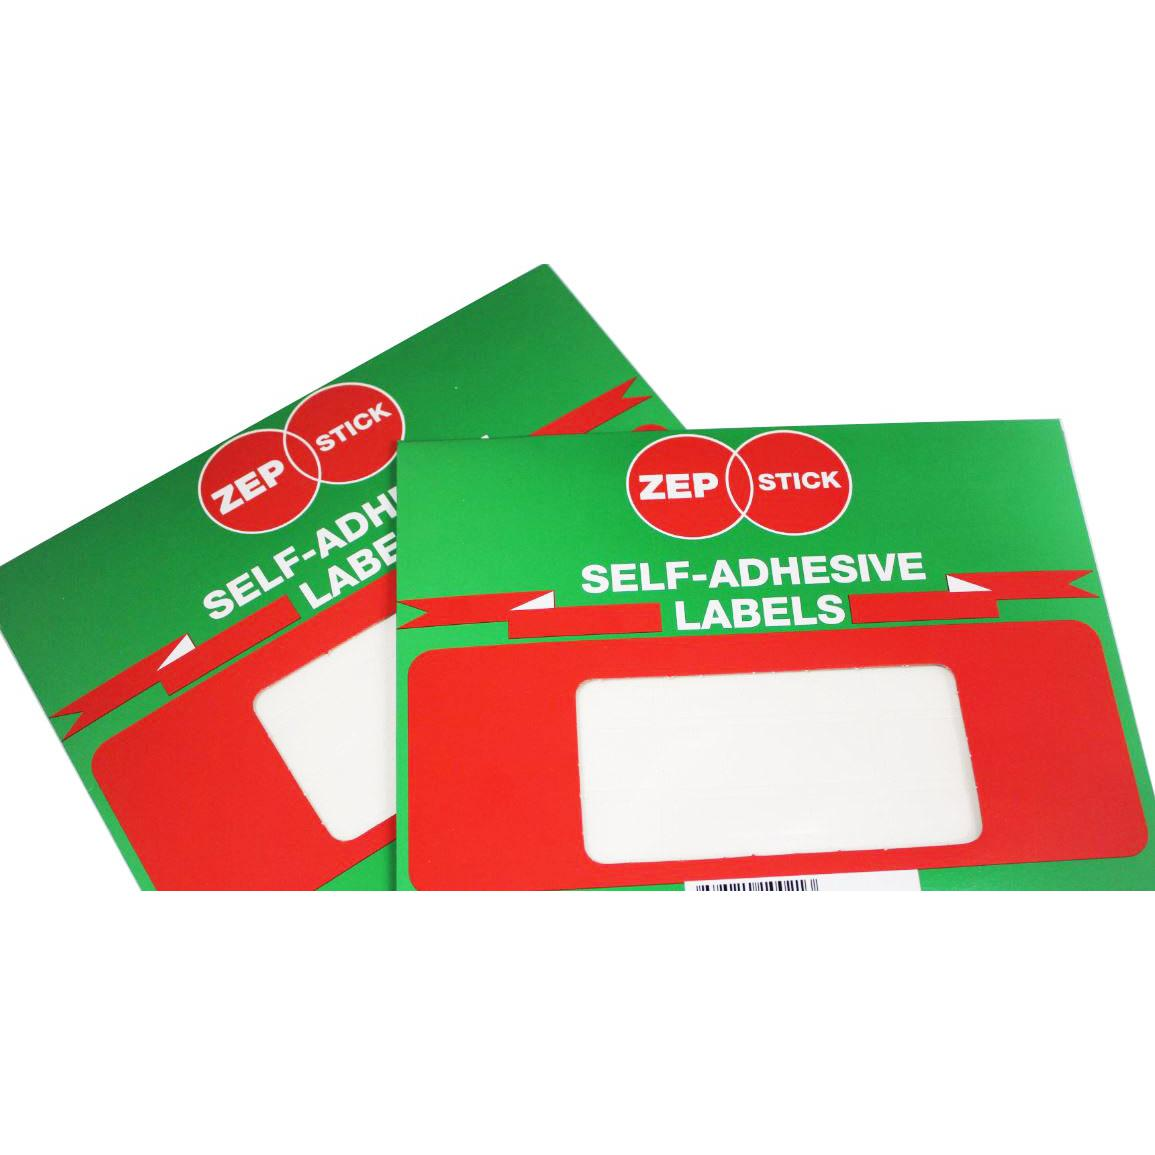 Zepstick Self Adhesive White Labels 20 x 148mm 20148